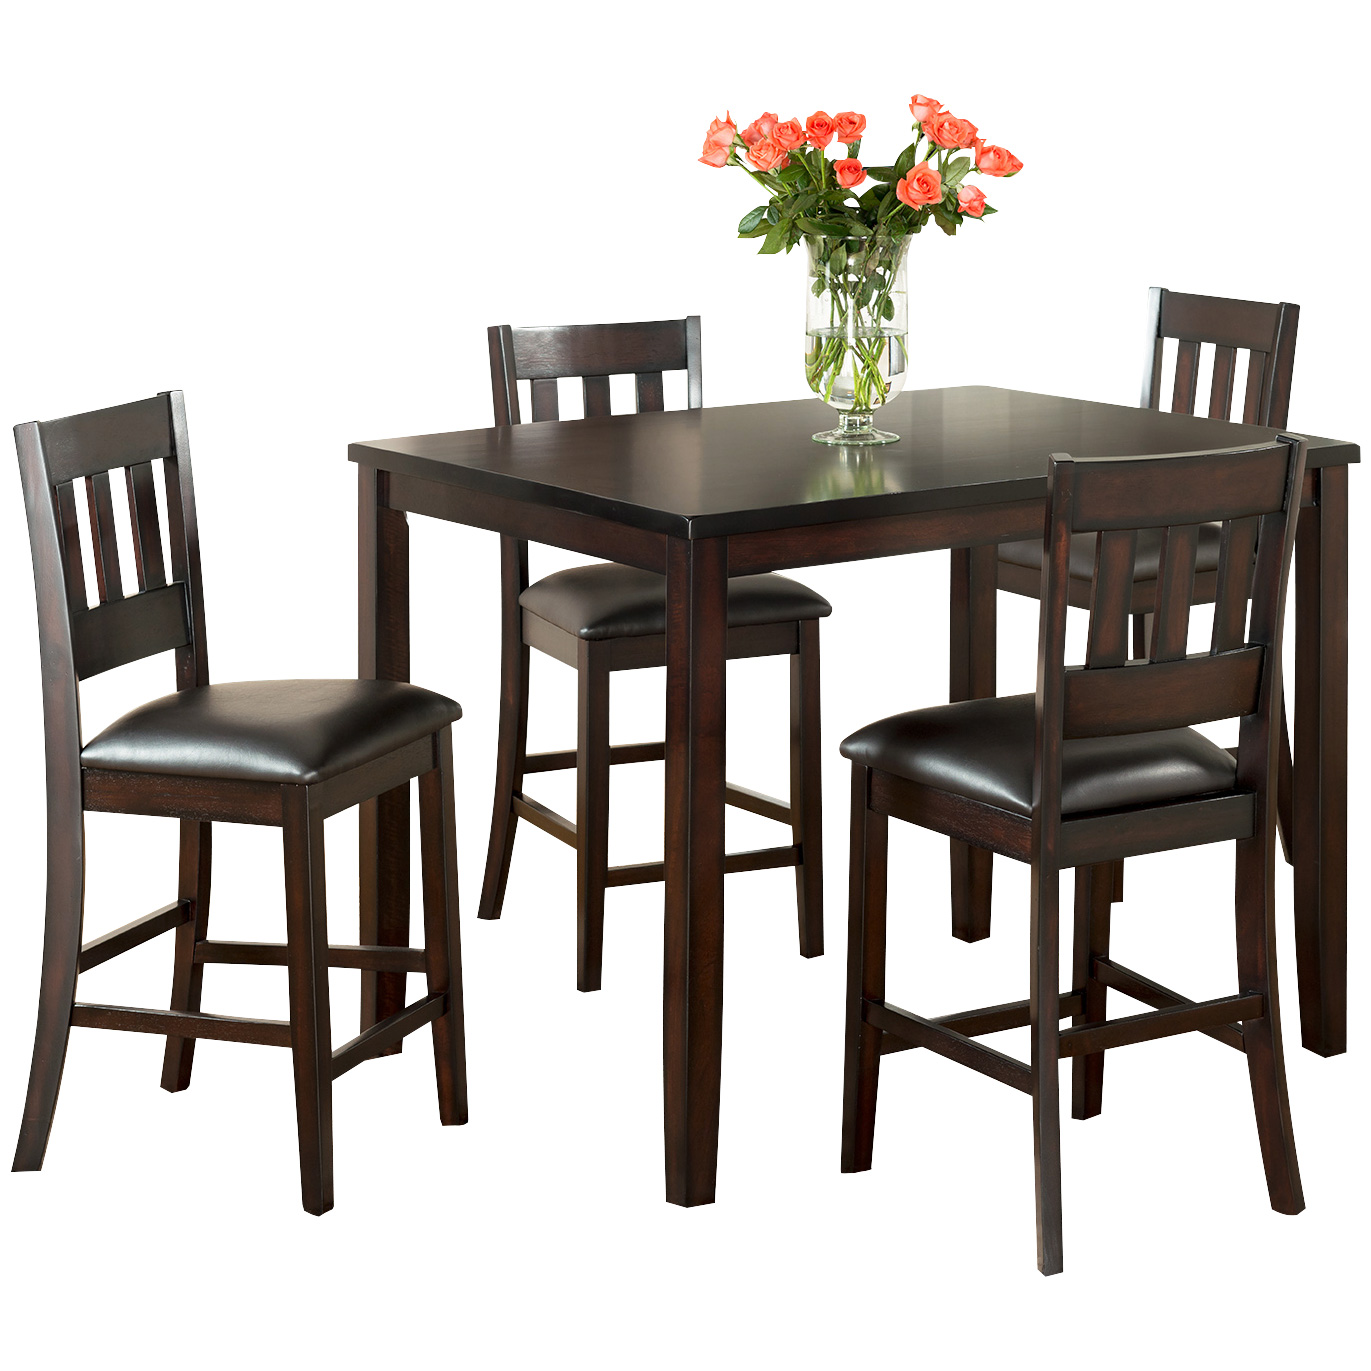 Vilo Home | Americano Cherry 5 Piece Counter Dining Set